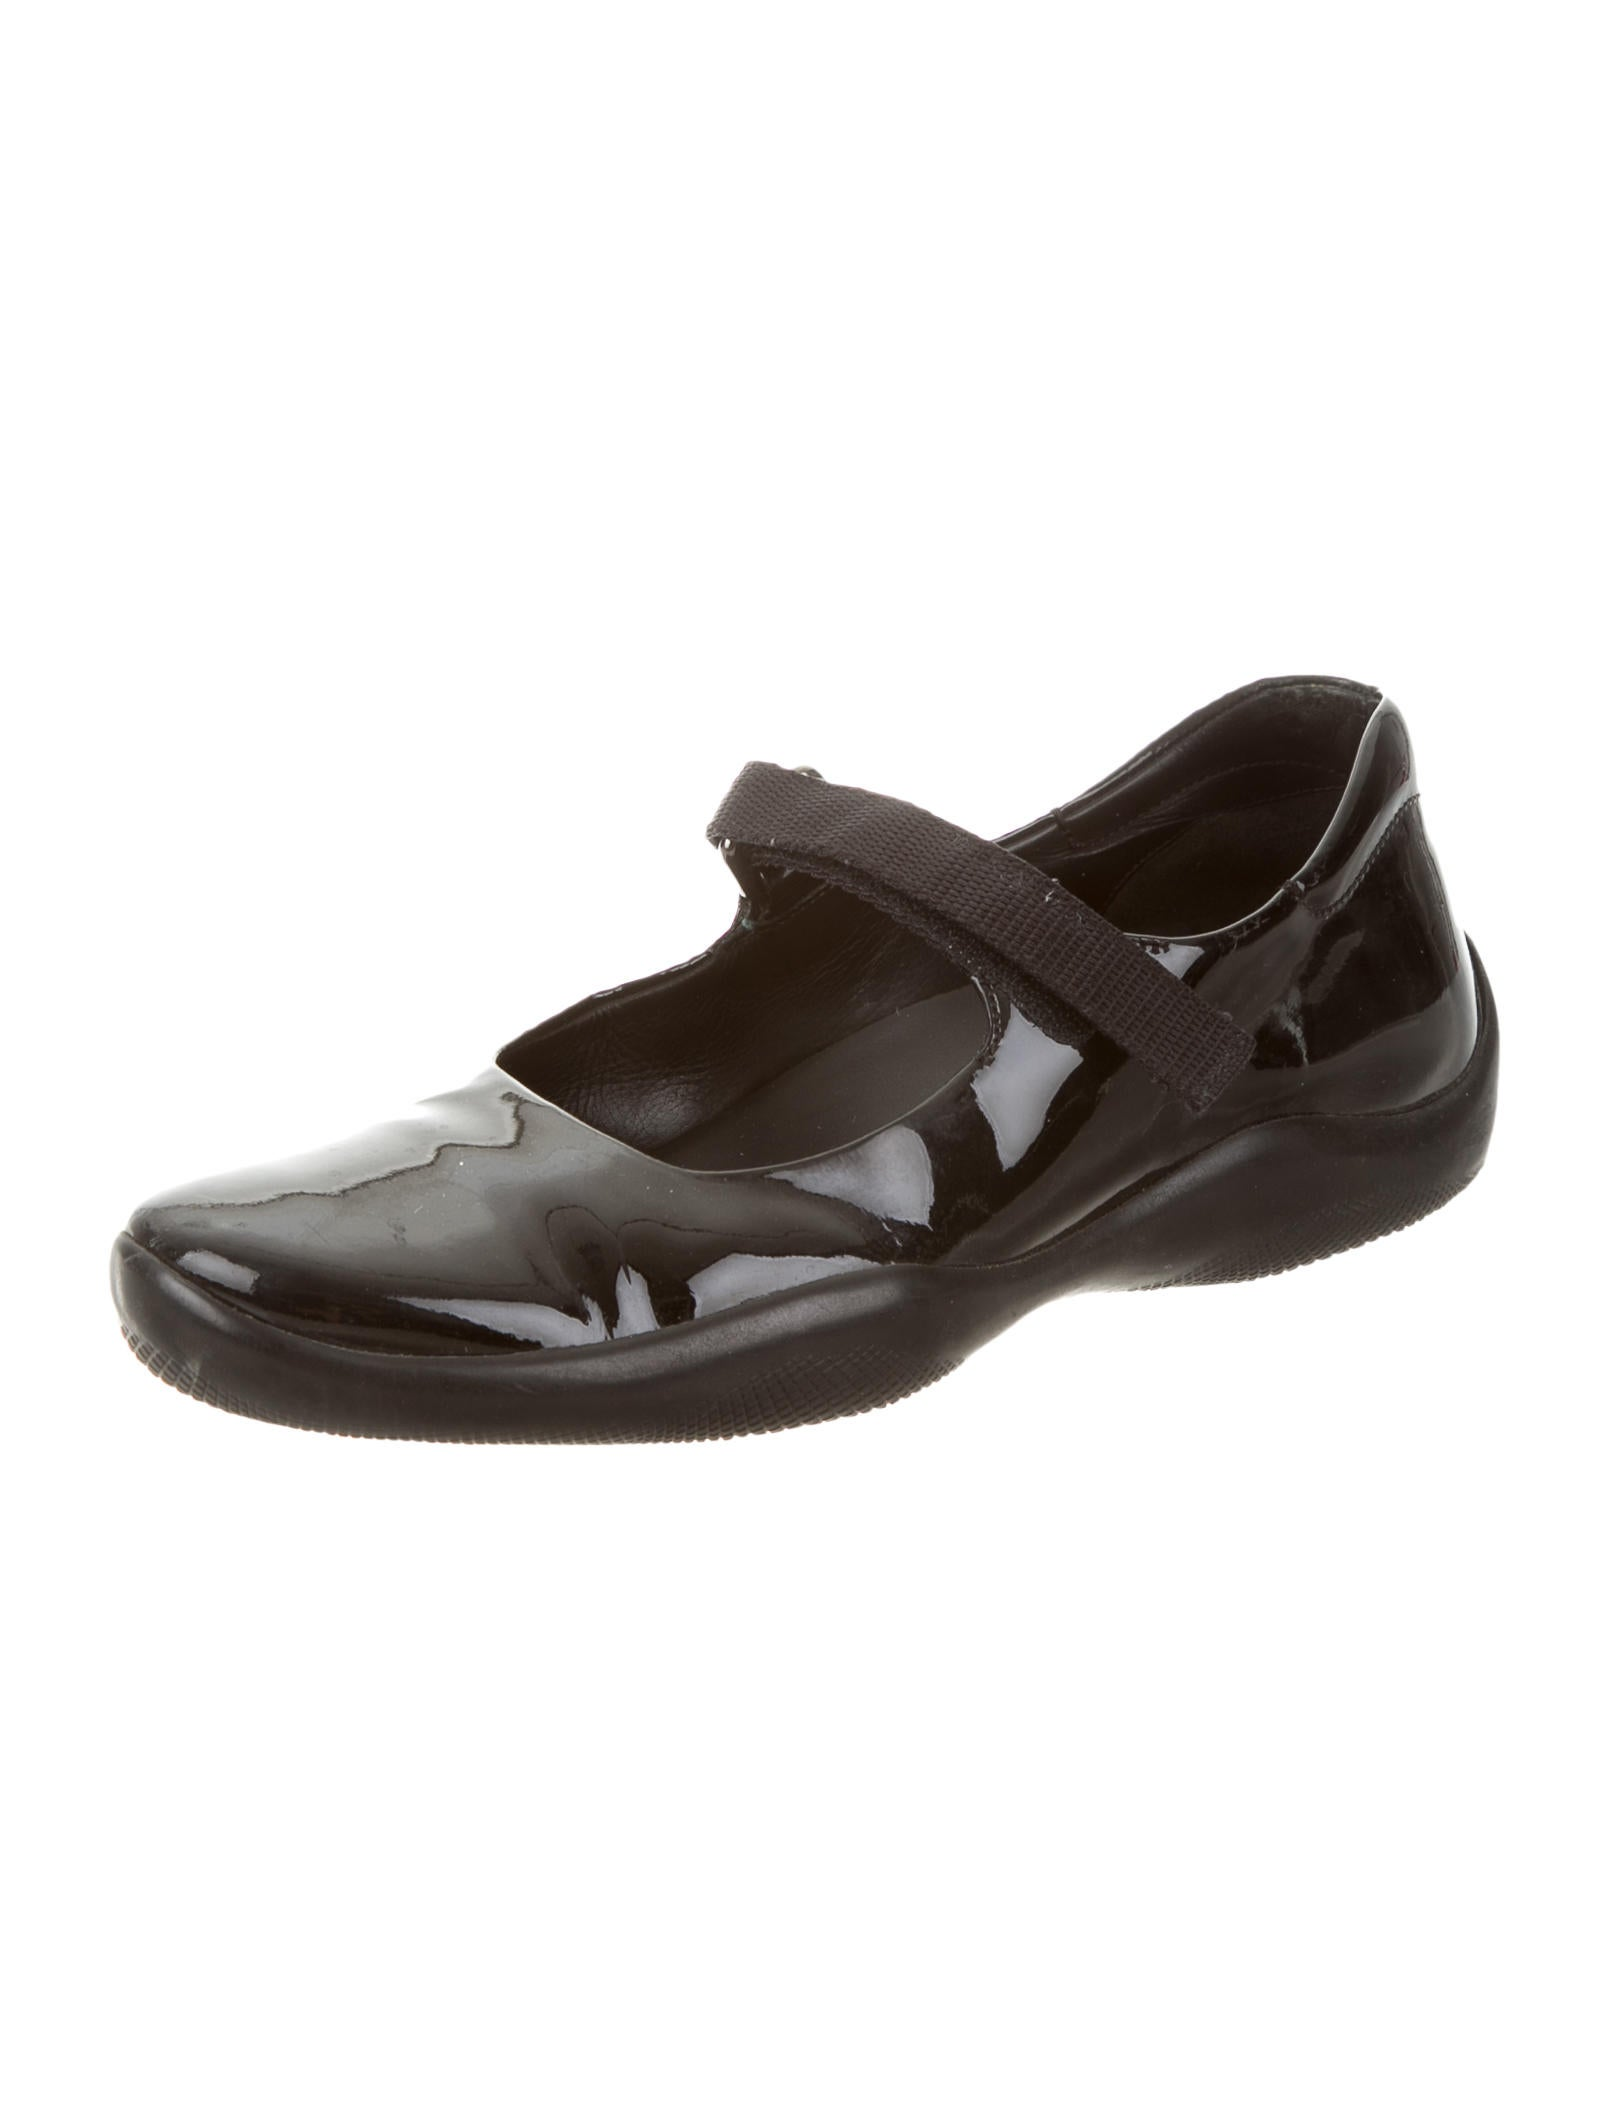 Prada Sport Patent Leather Mary Jane Flats Shoes